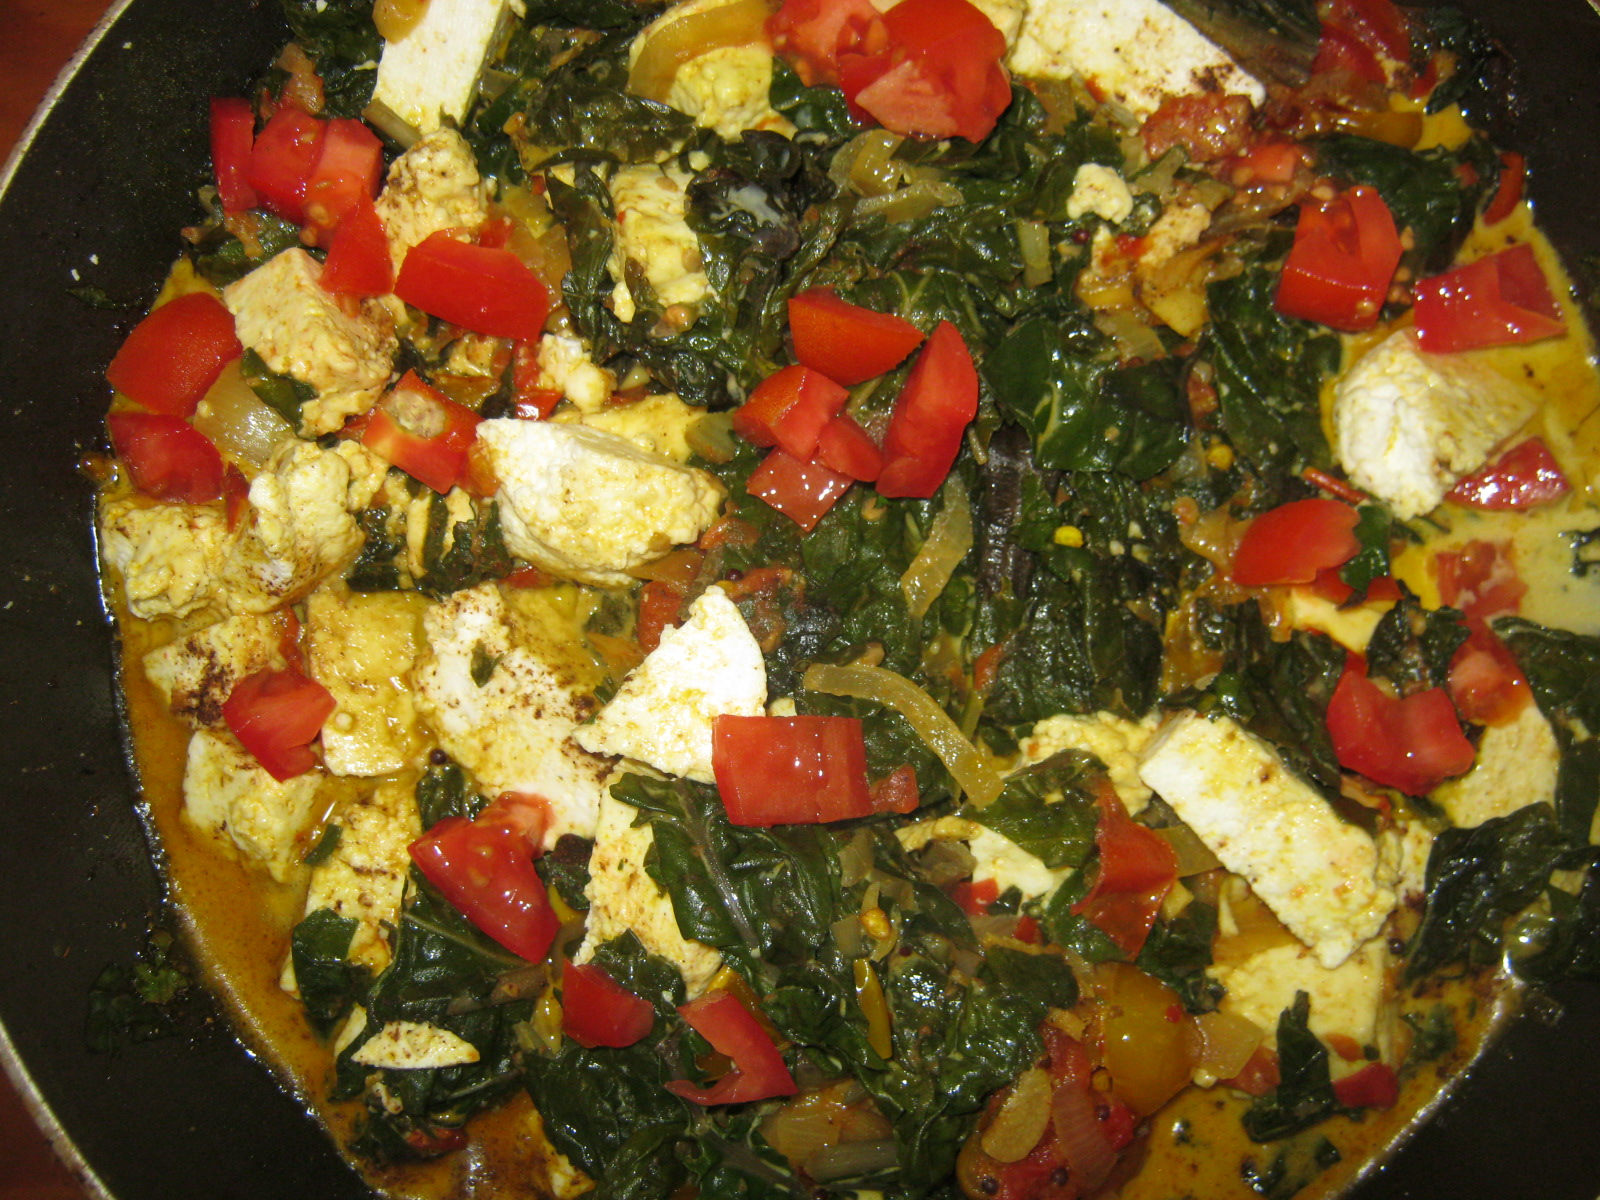 Palak paneer - Homemade Indian fresh cheese with spinach